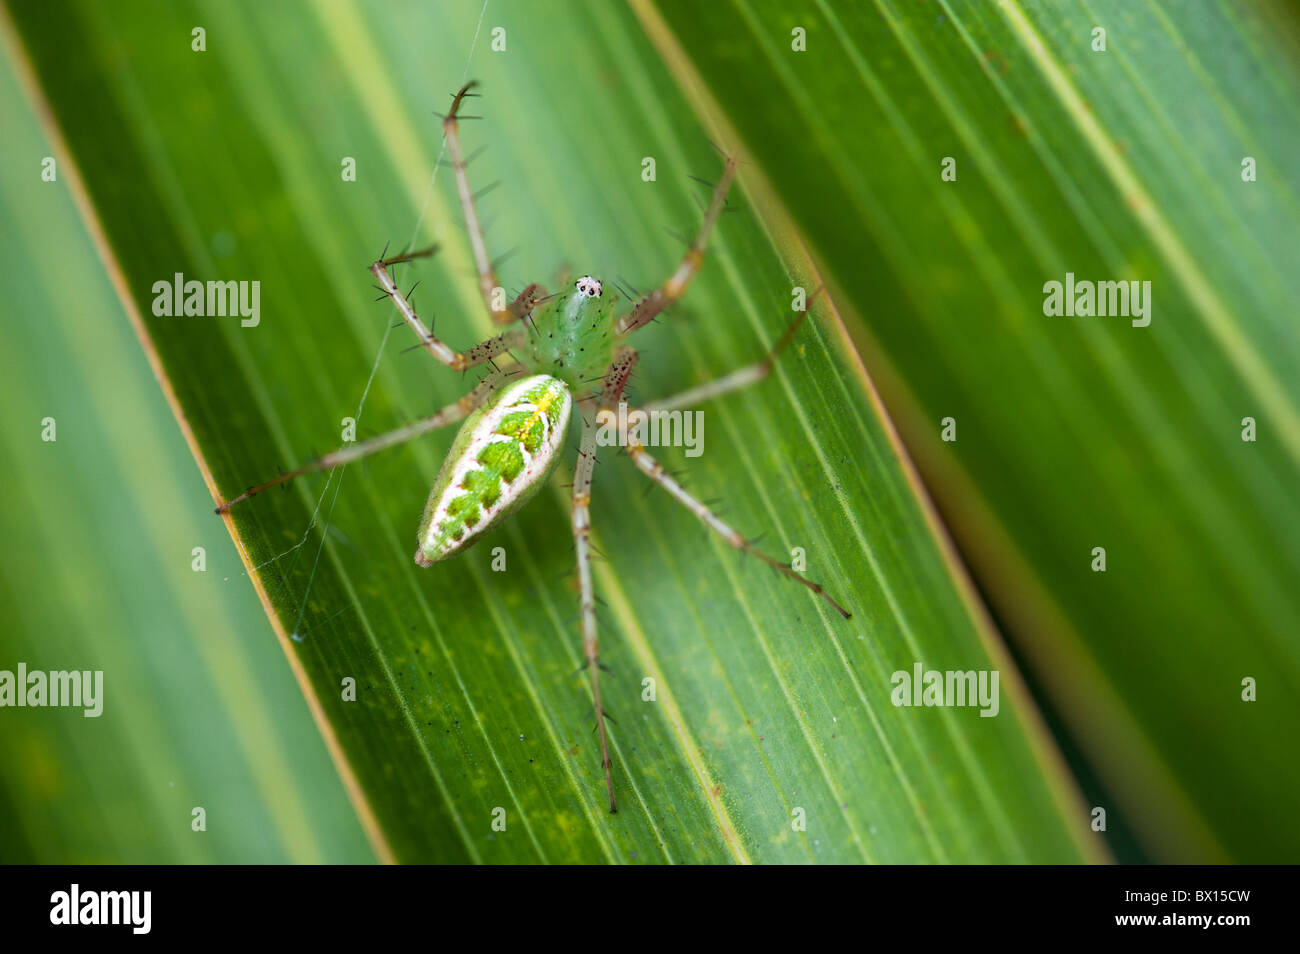 Green Lynx spider on a leaf in India - Stock Image